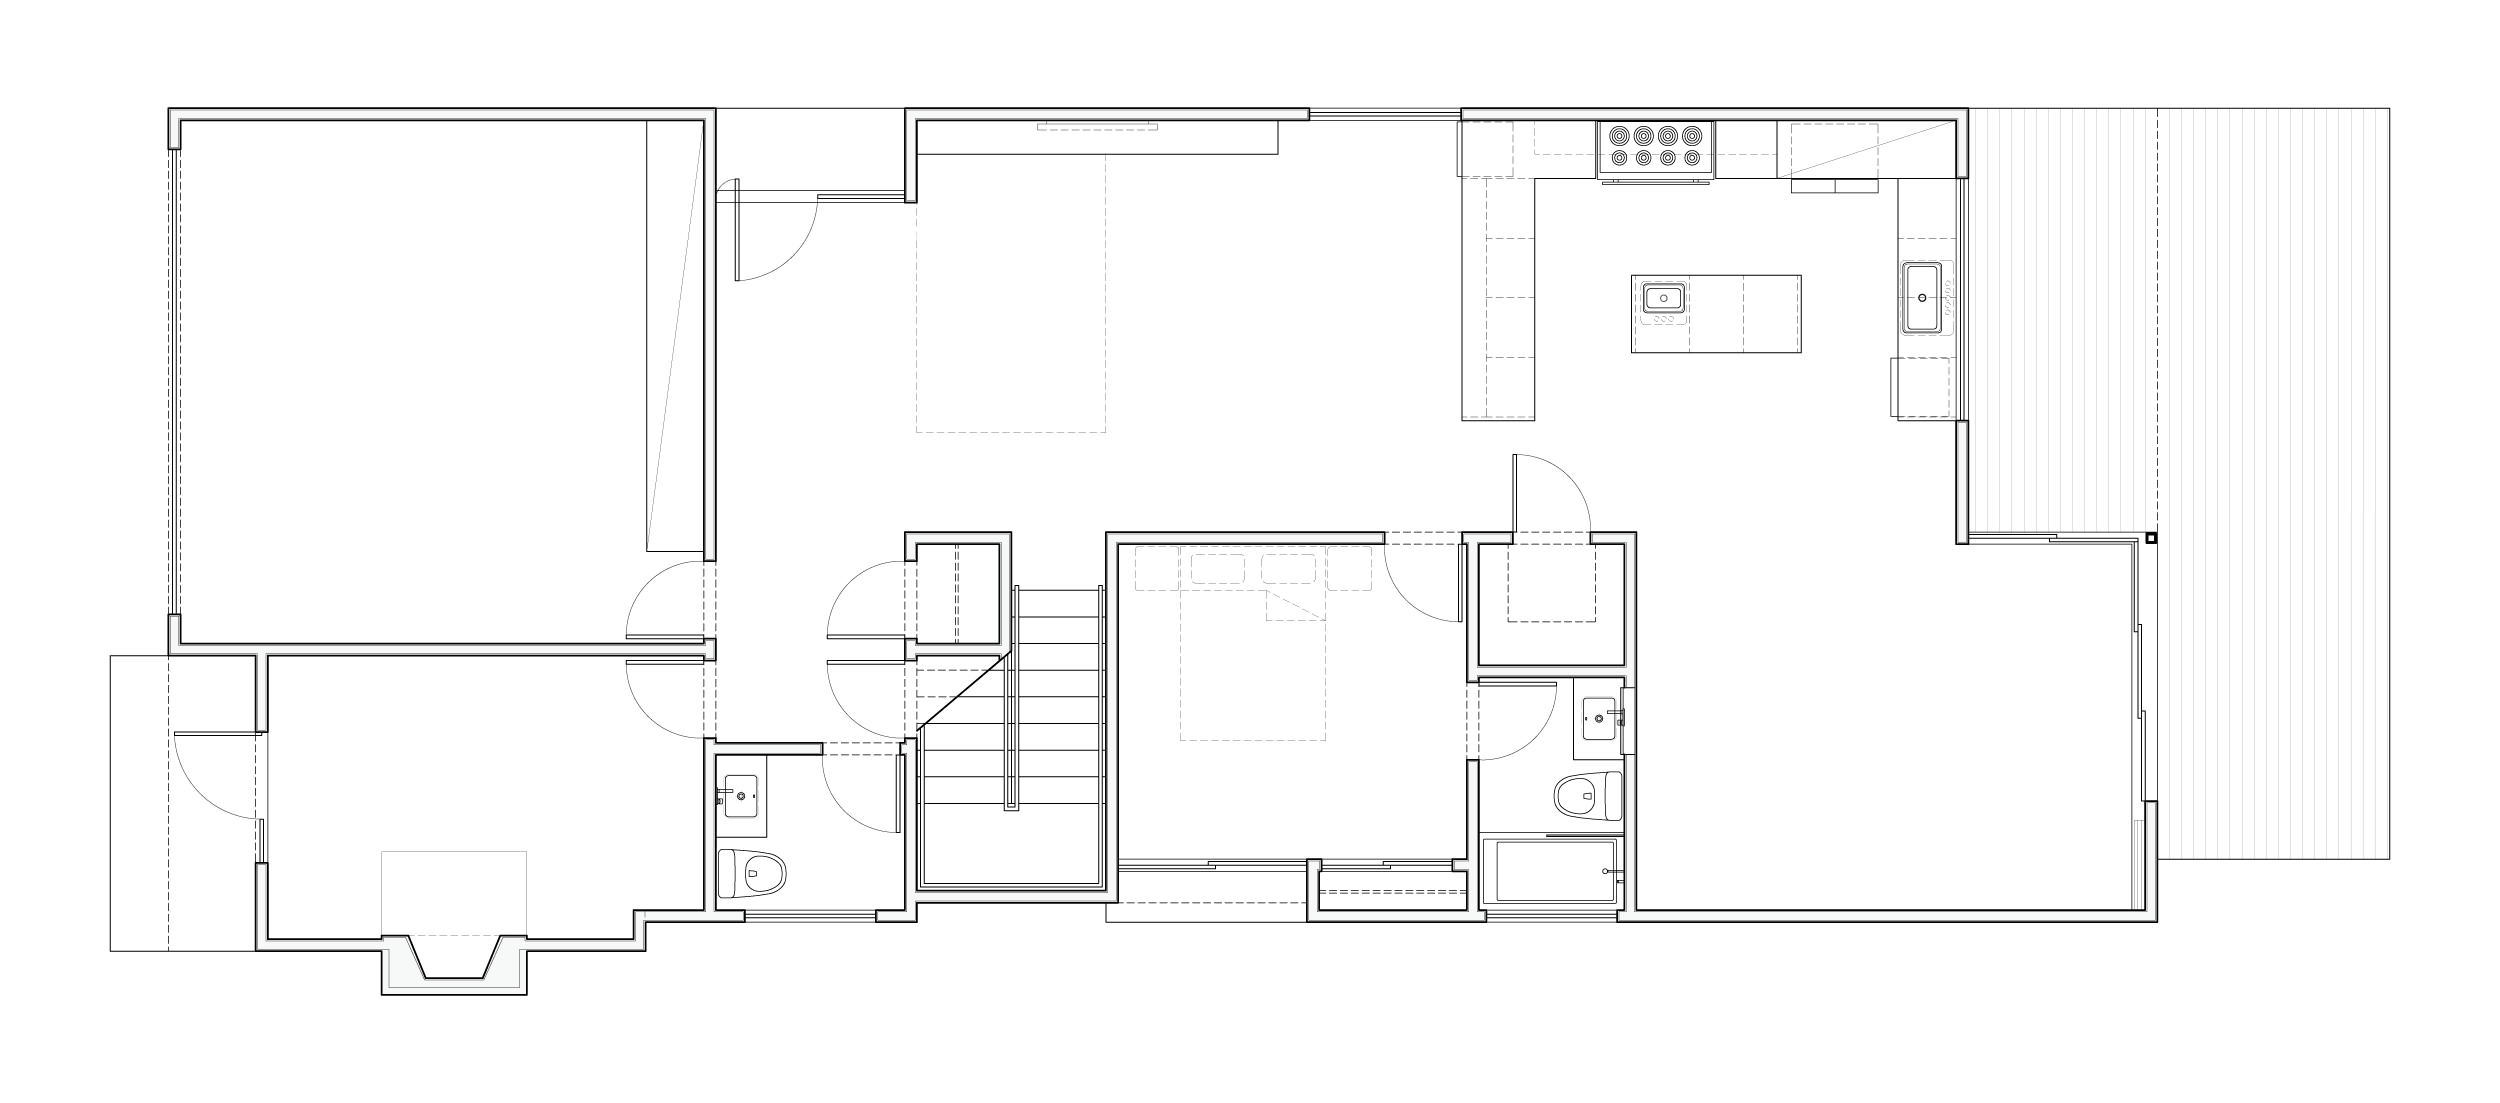 First floor plan showing the open living space that connects to the backyard.